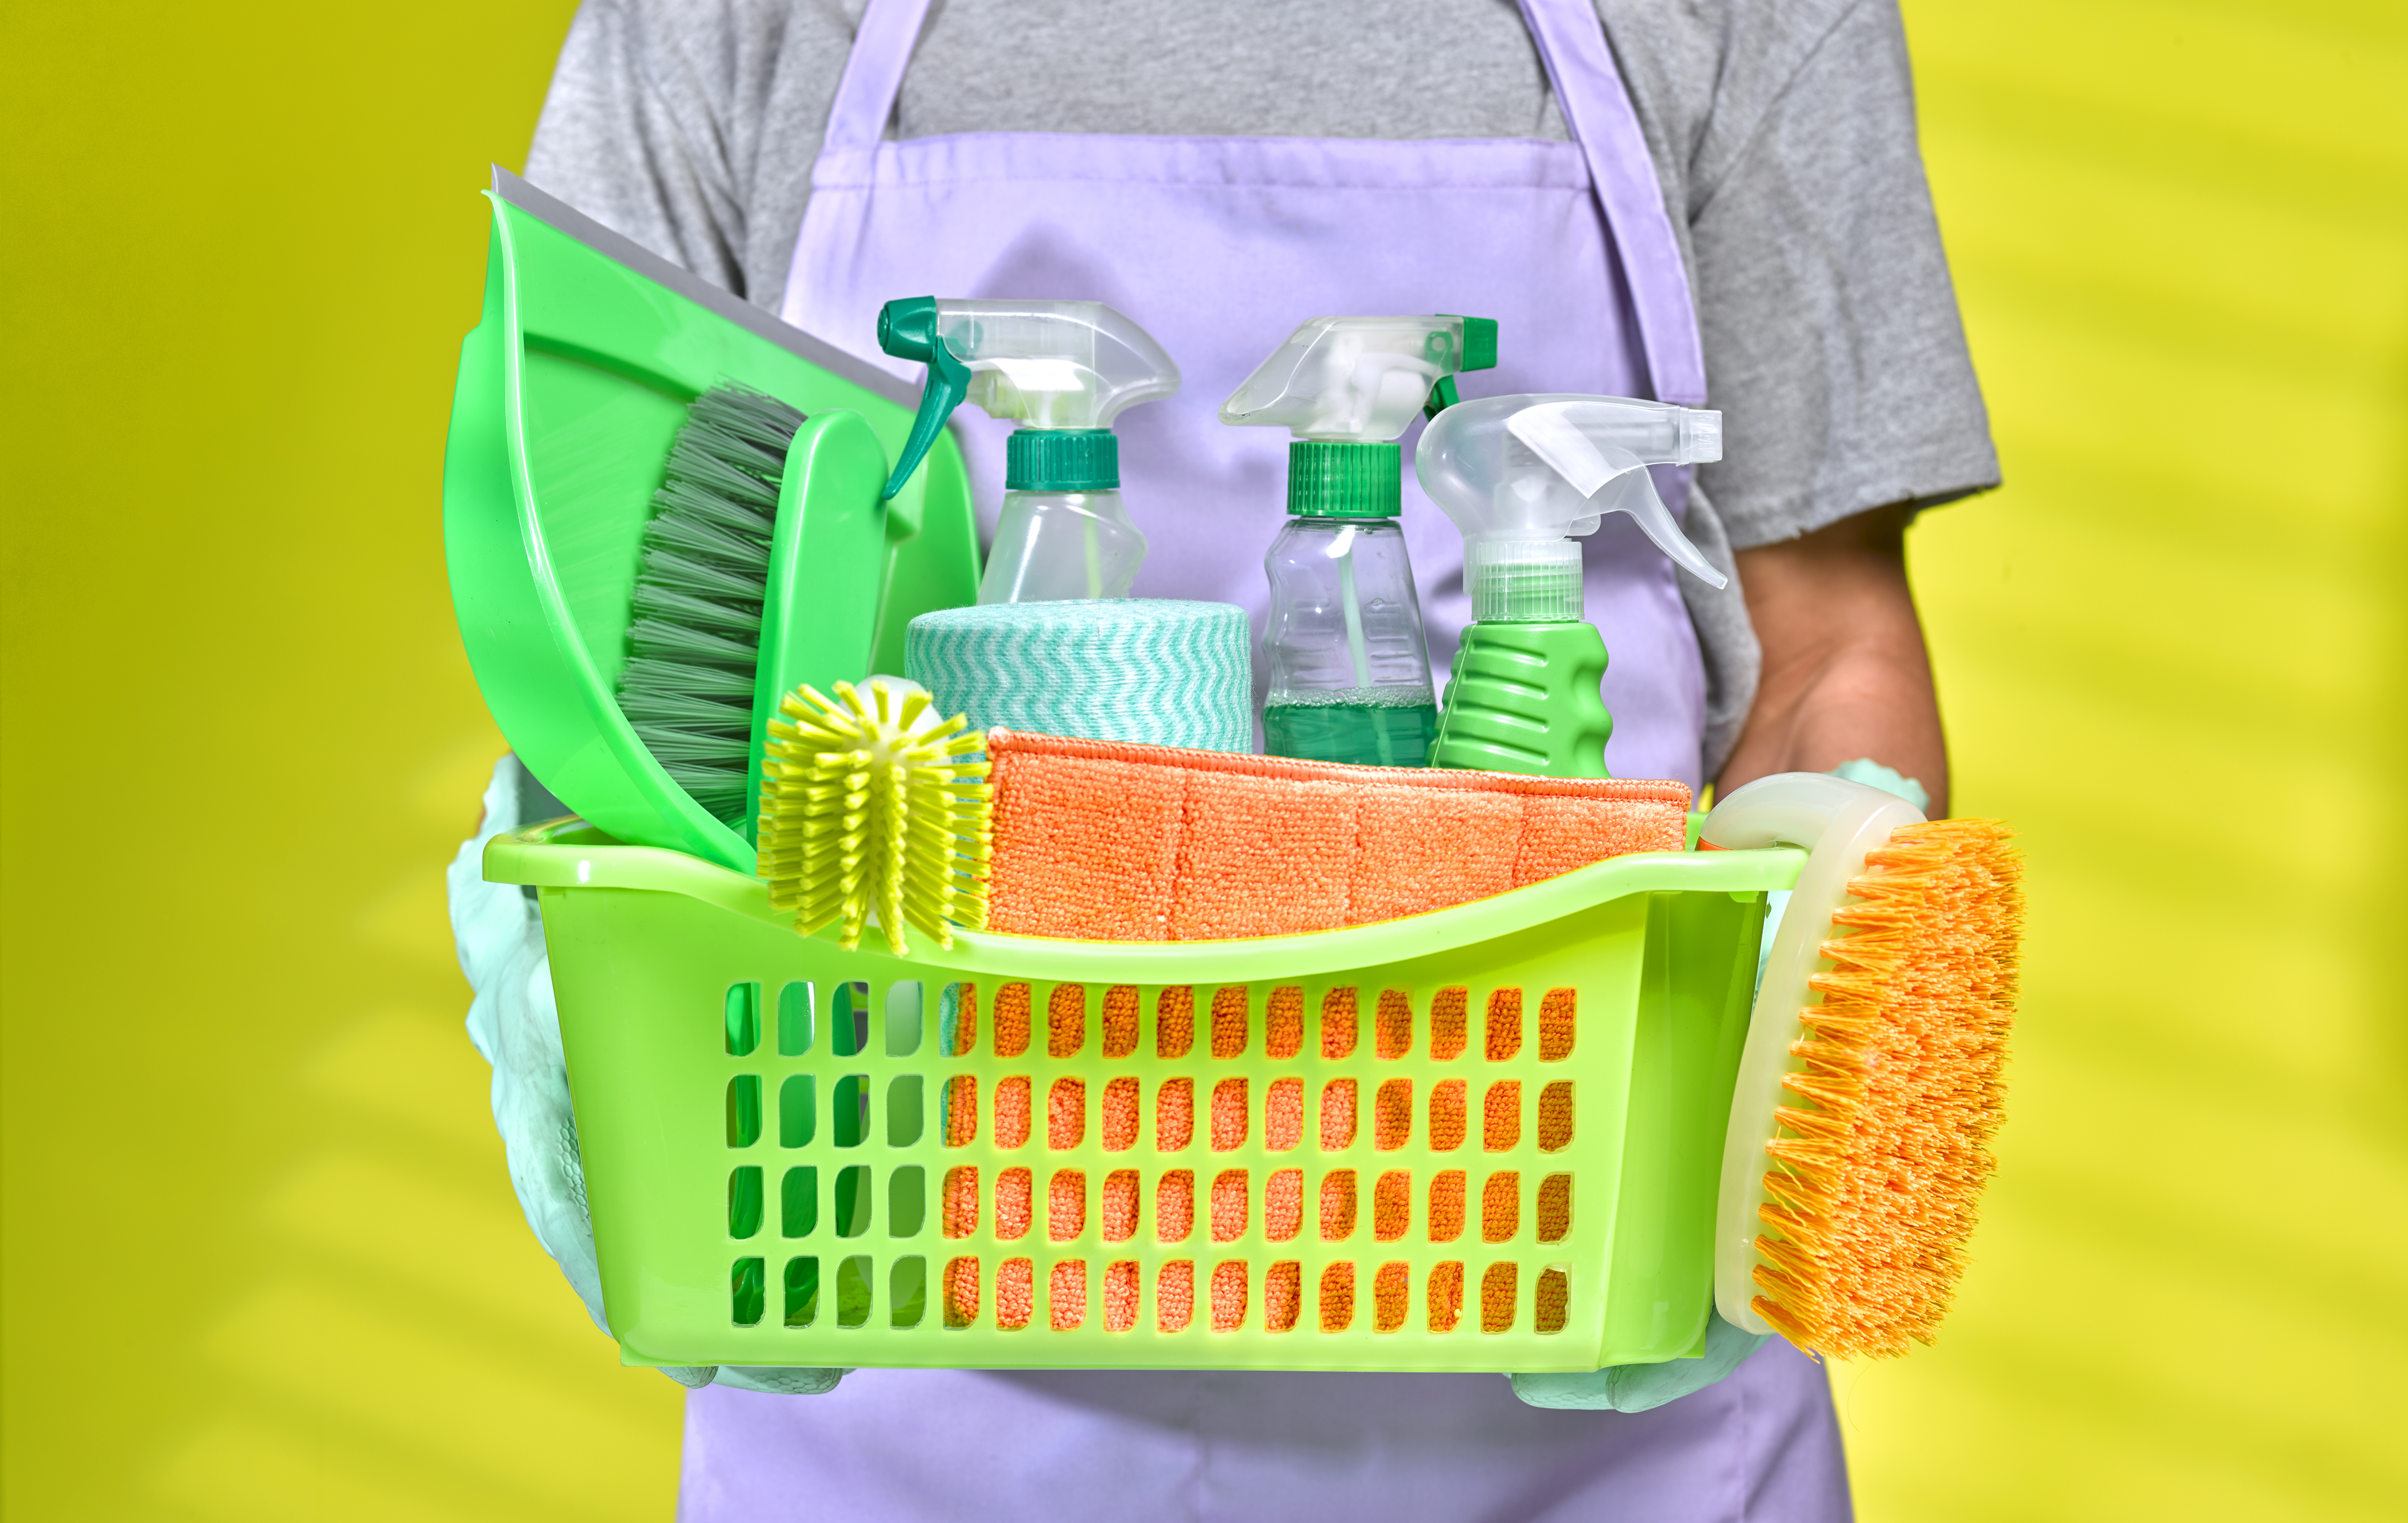 A person carrying a basket of cleaning products.